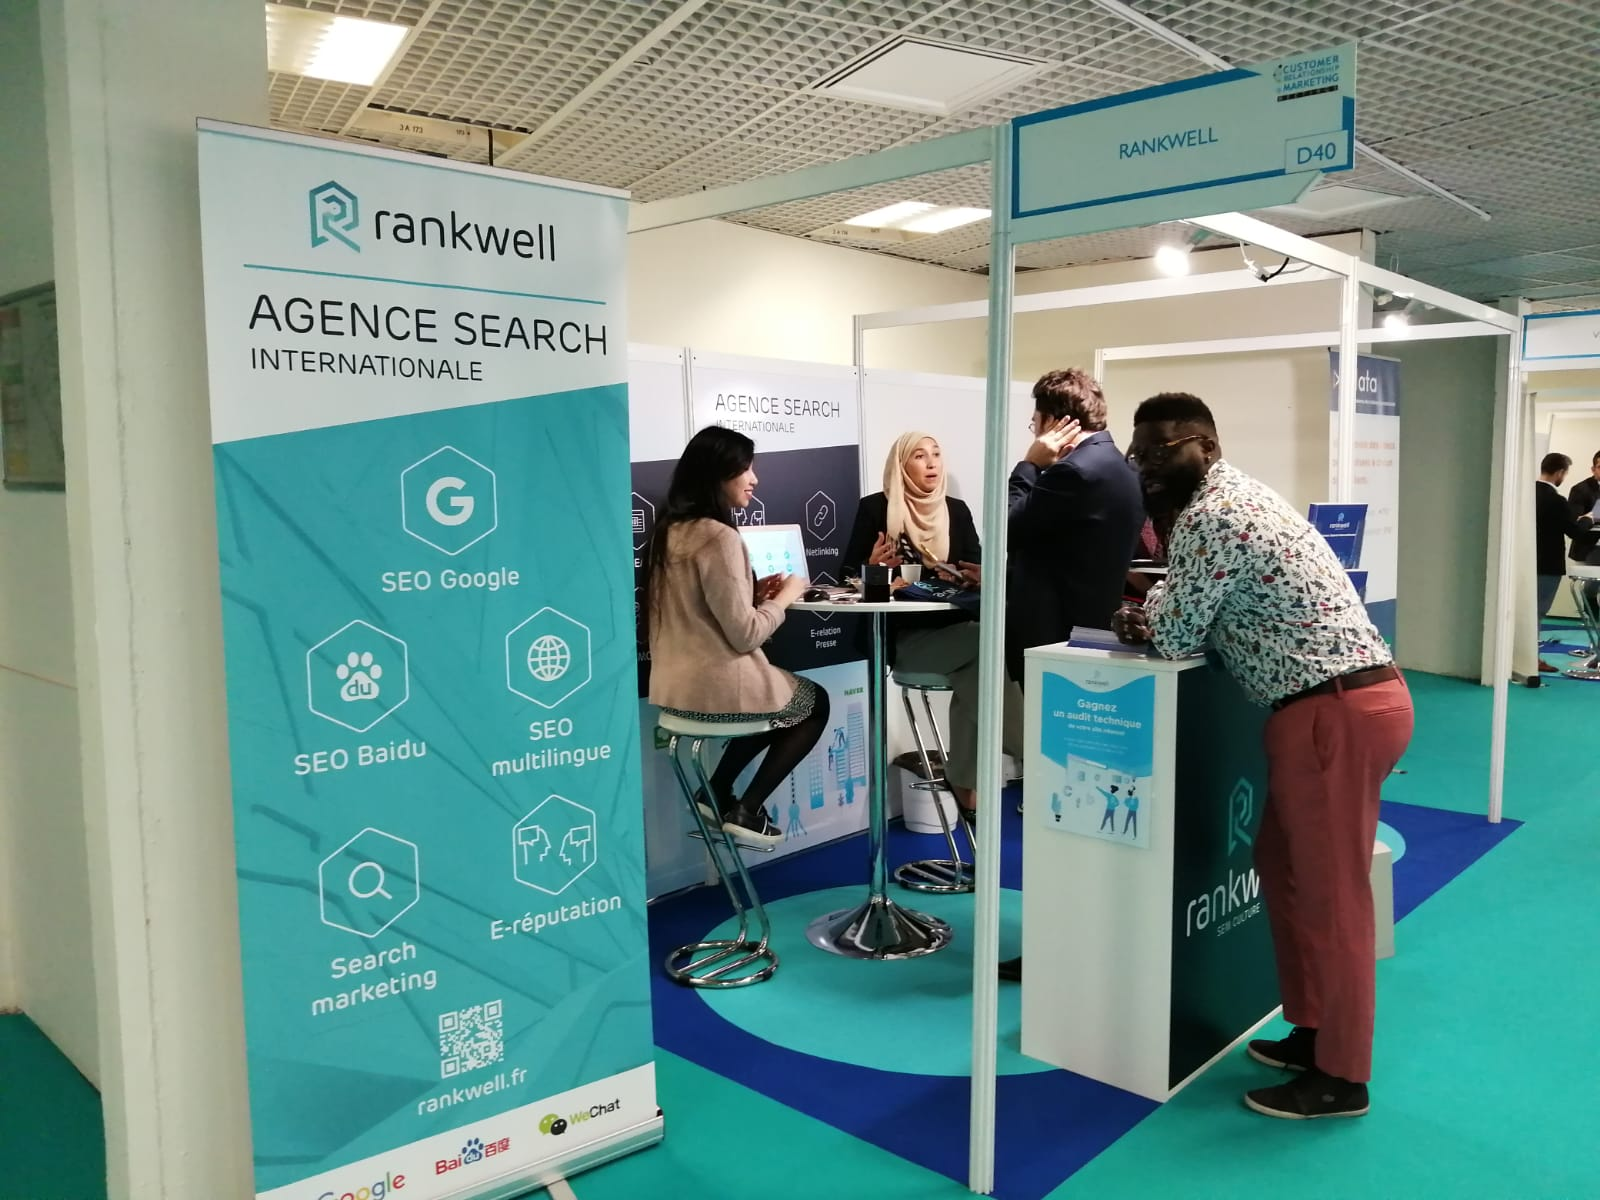 RANKWELL au salon CRM Meetings à Cannes en 2019